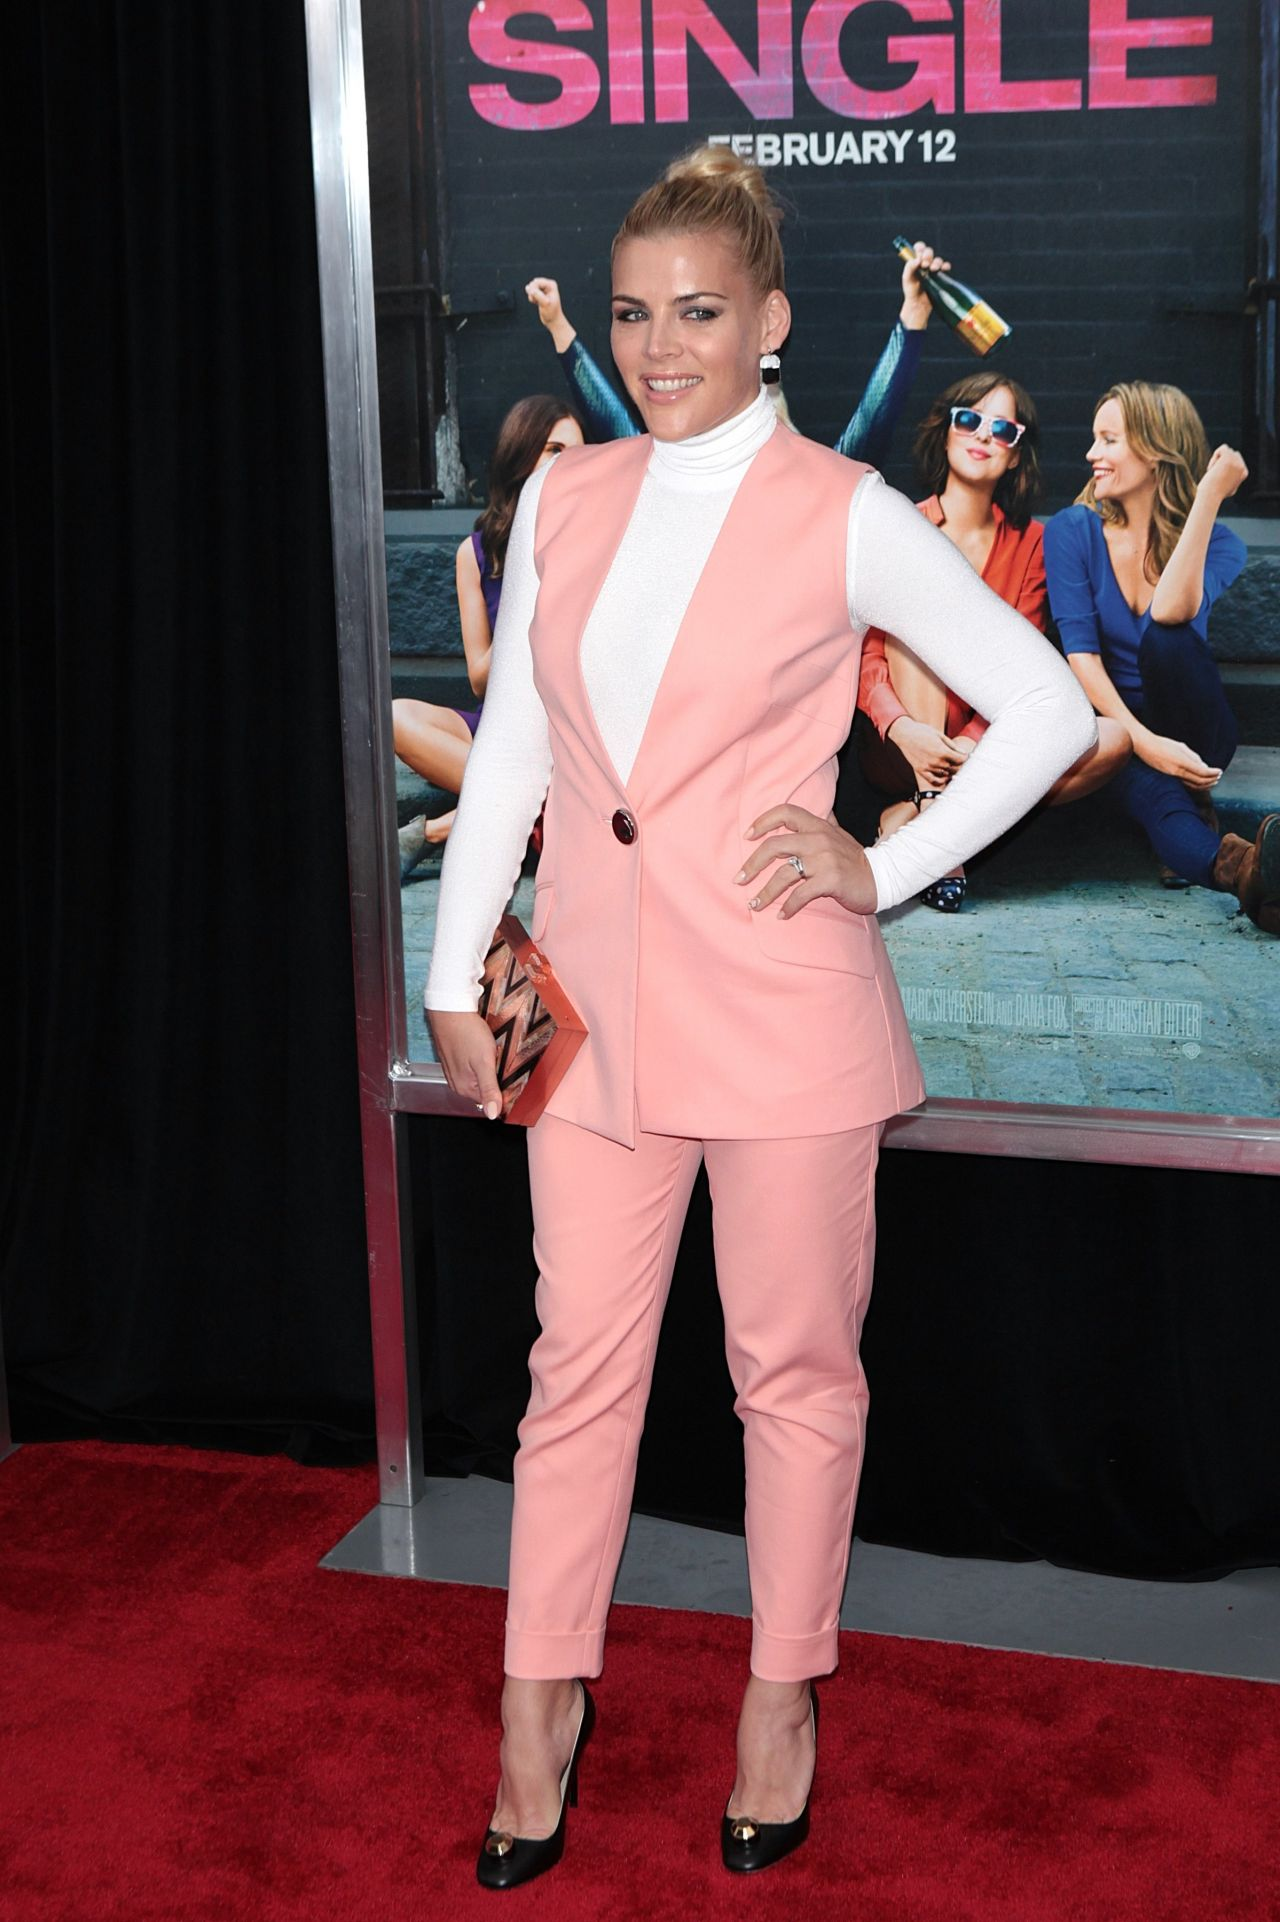 Busy philipps how to be single premiere in new york ccuart Choice Image